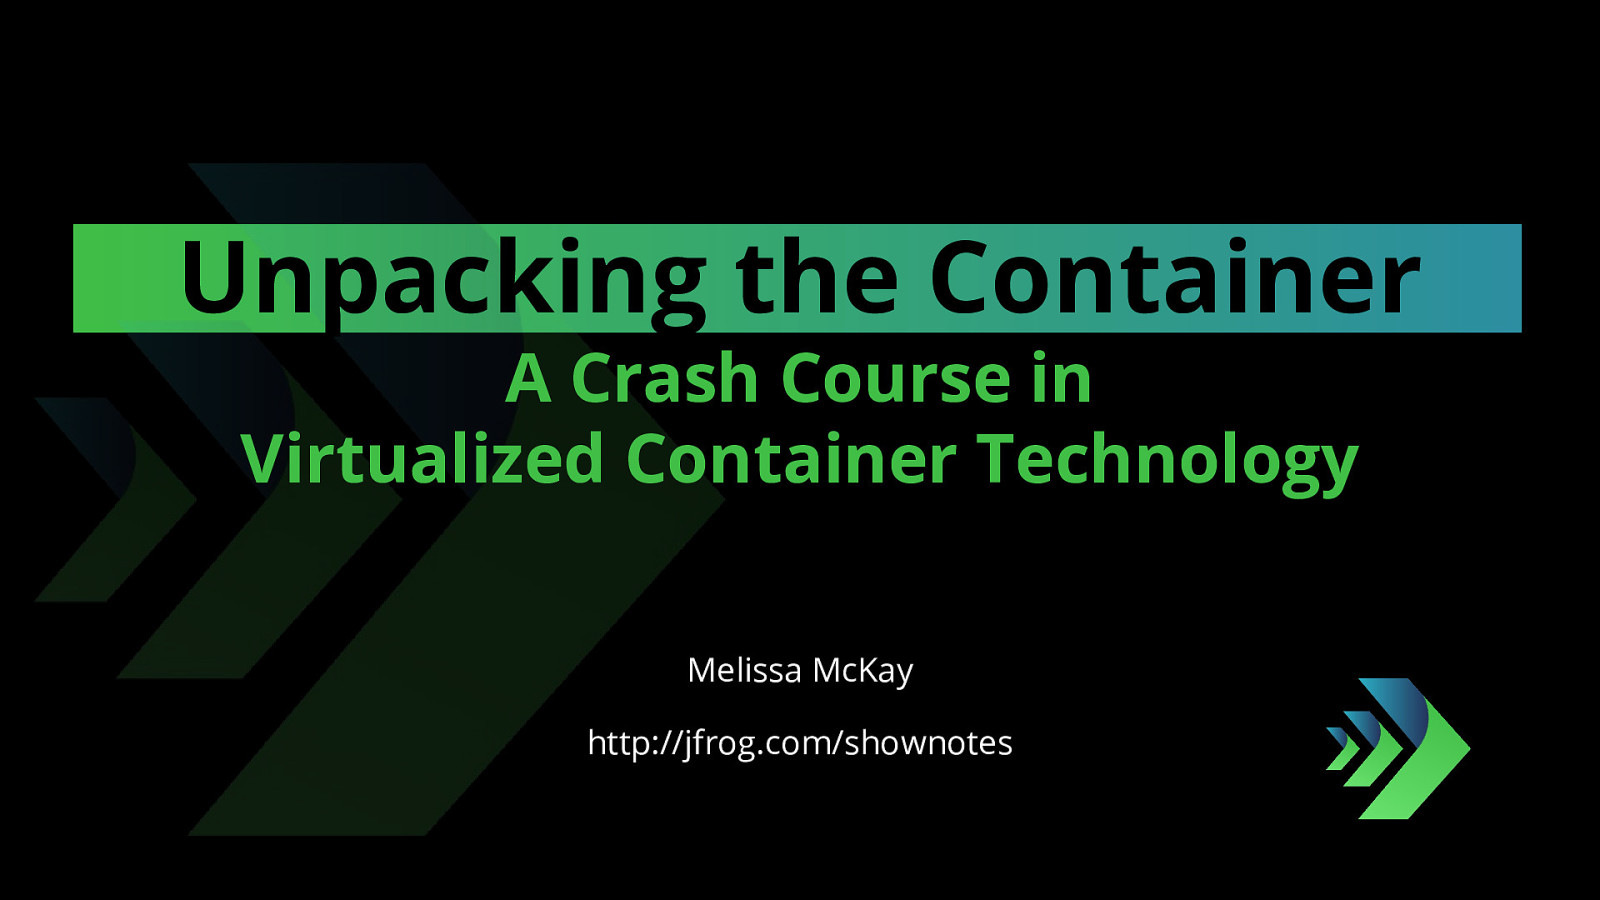 Unpacking the Container: A Crash Course in Virtualized Container Technology